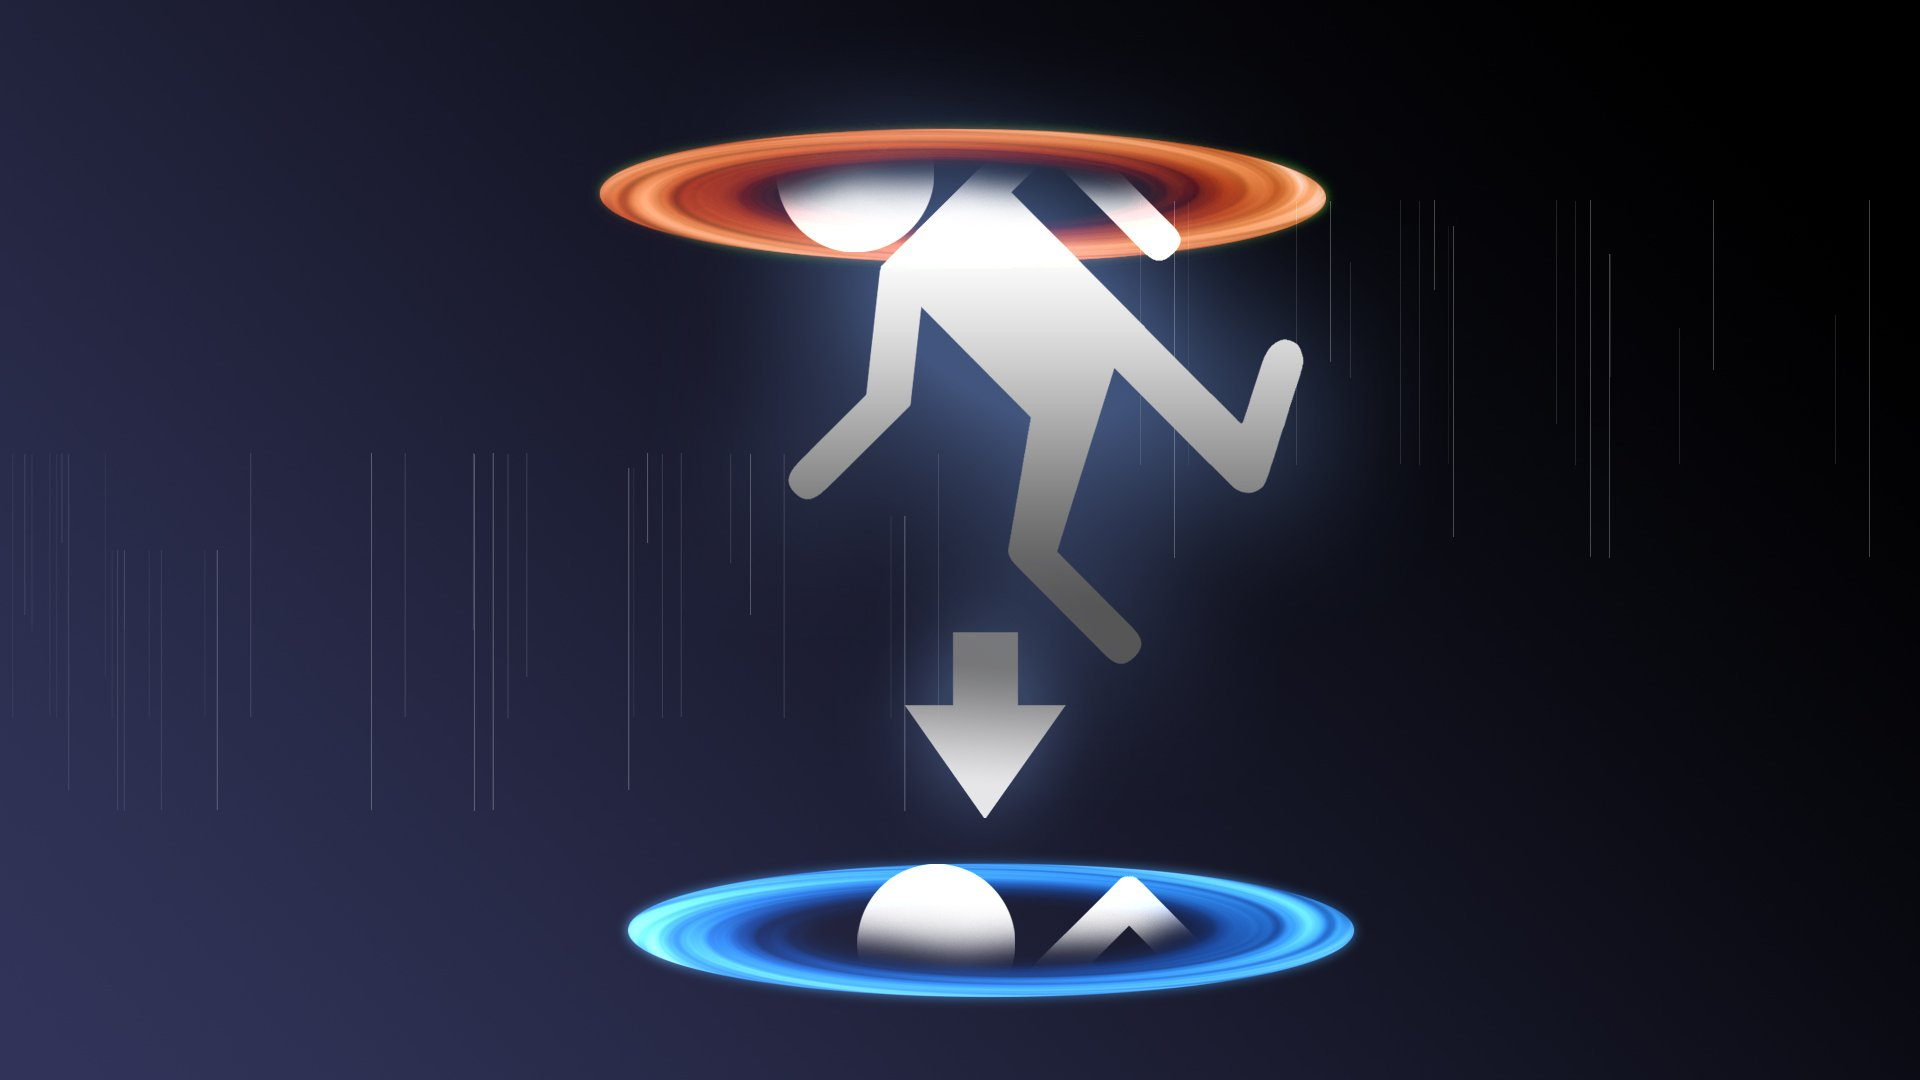 ... Portal Wallpaper; Portal Wallpaper HD